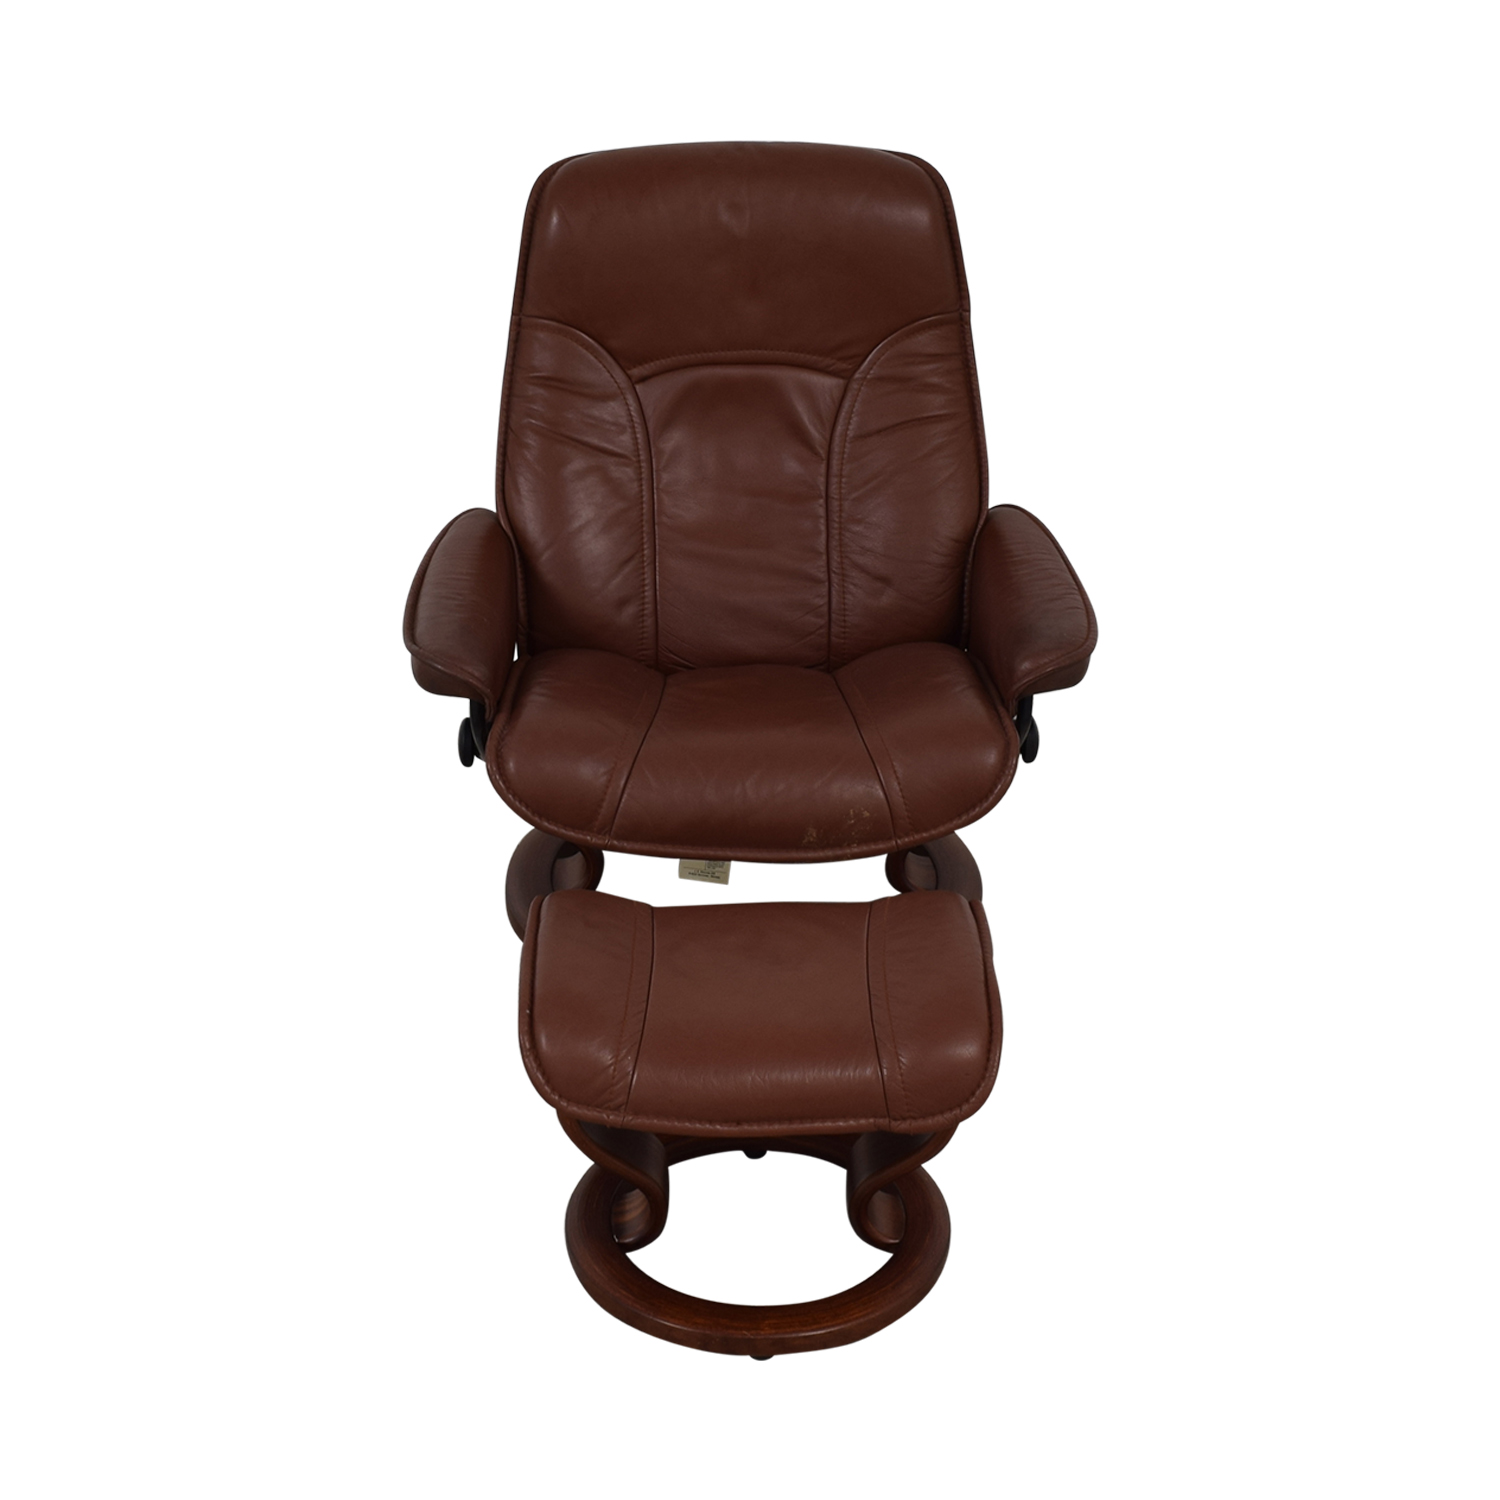 Brown Swivel Chair with Ottoman brown